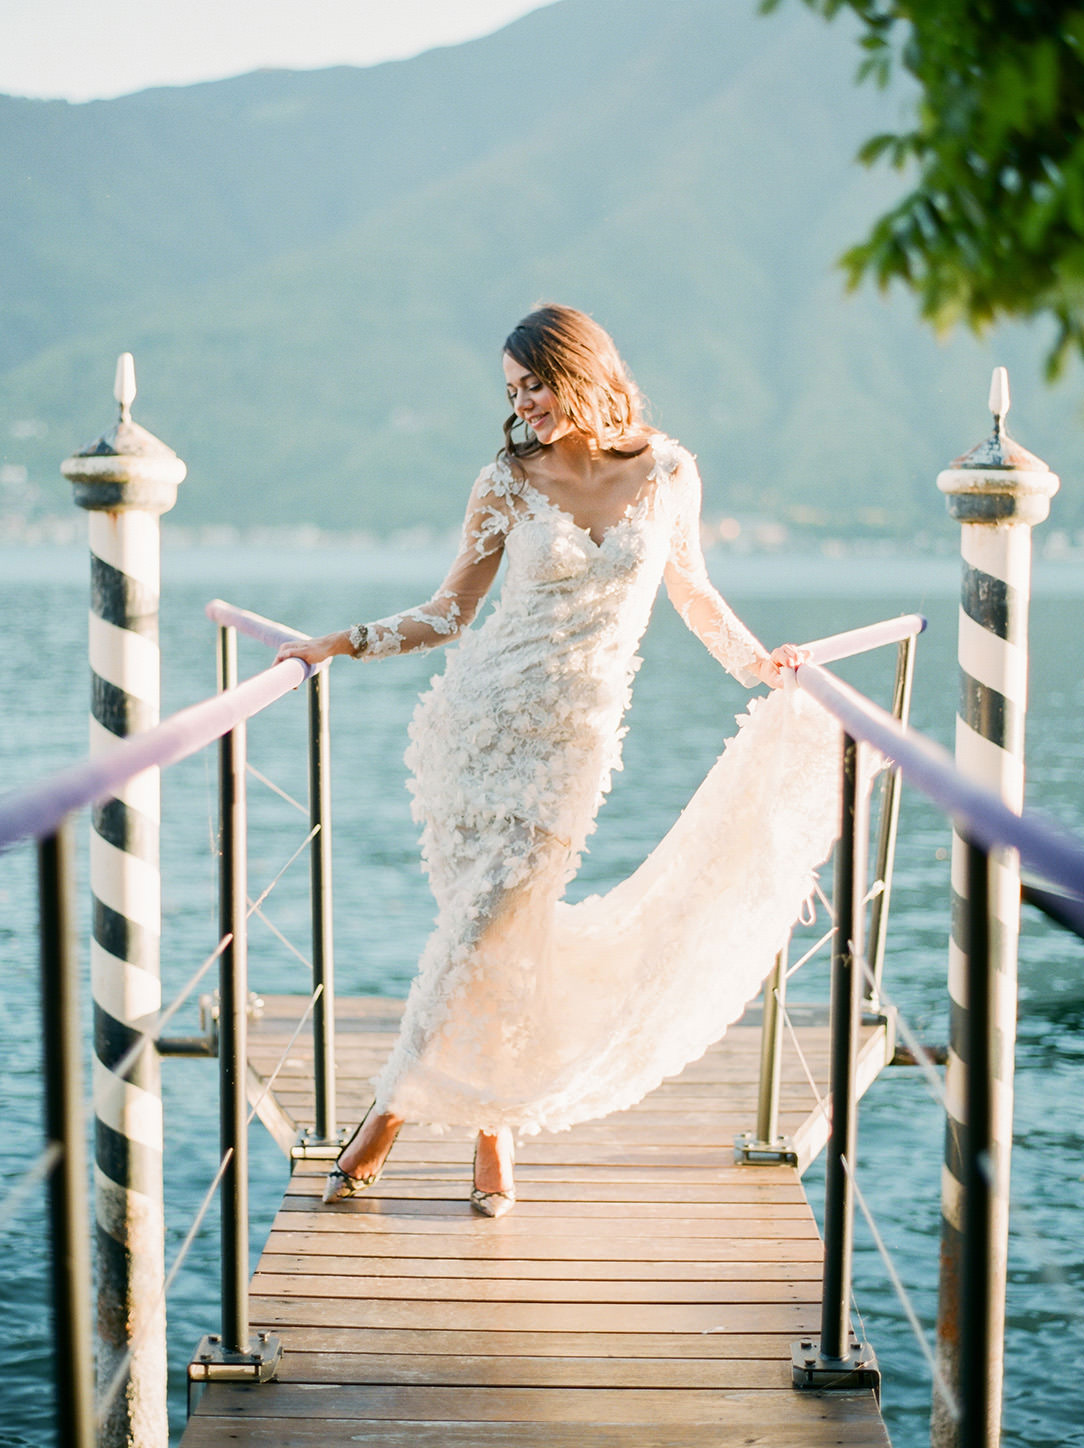 villa balbiano dock with bride posing